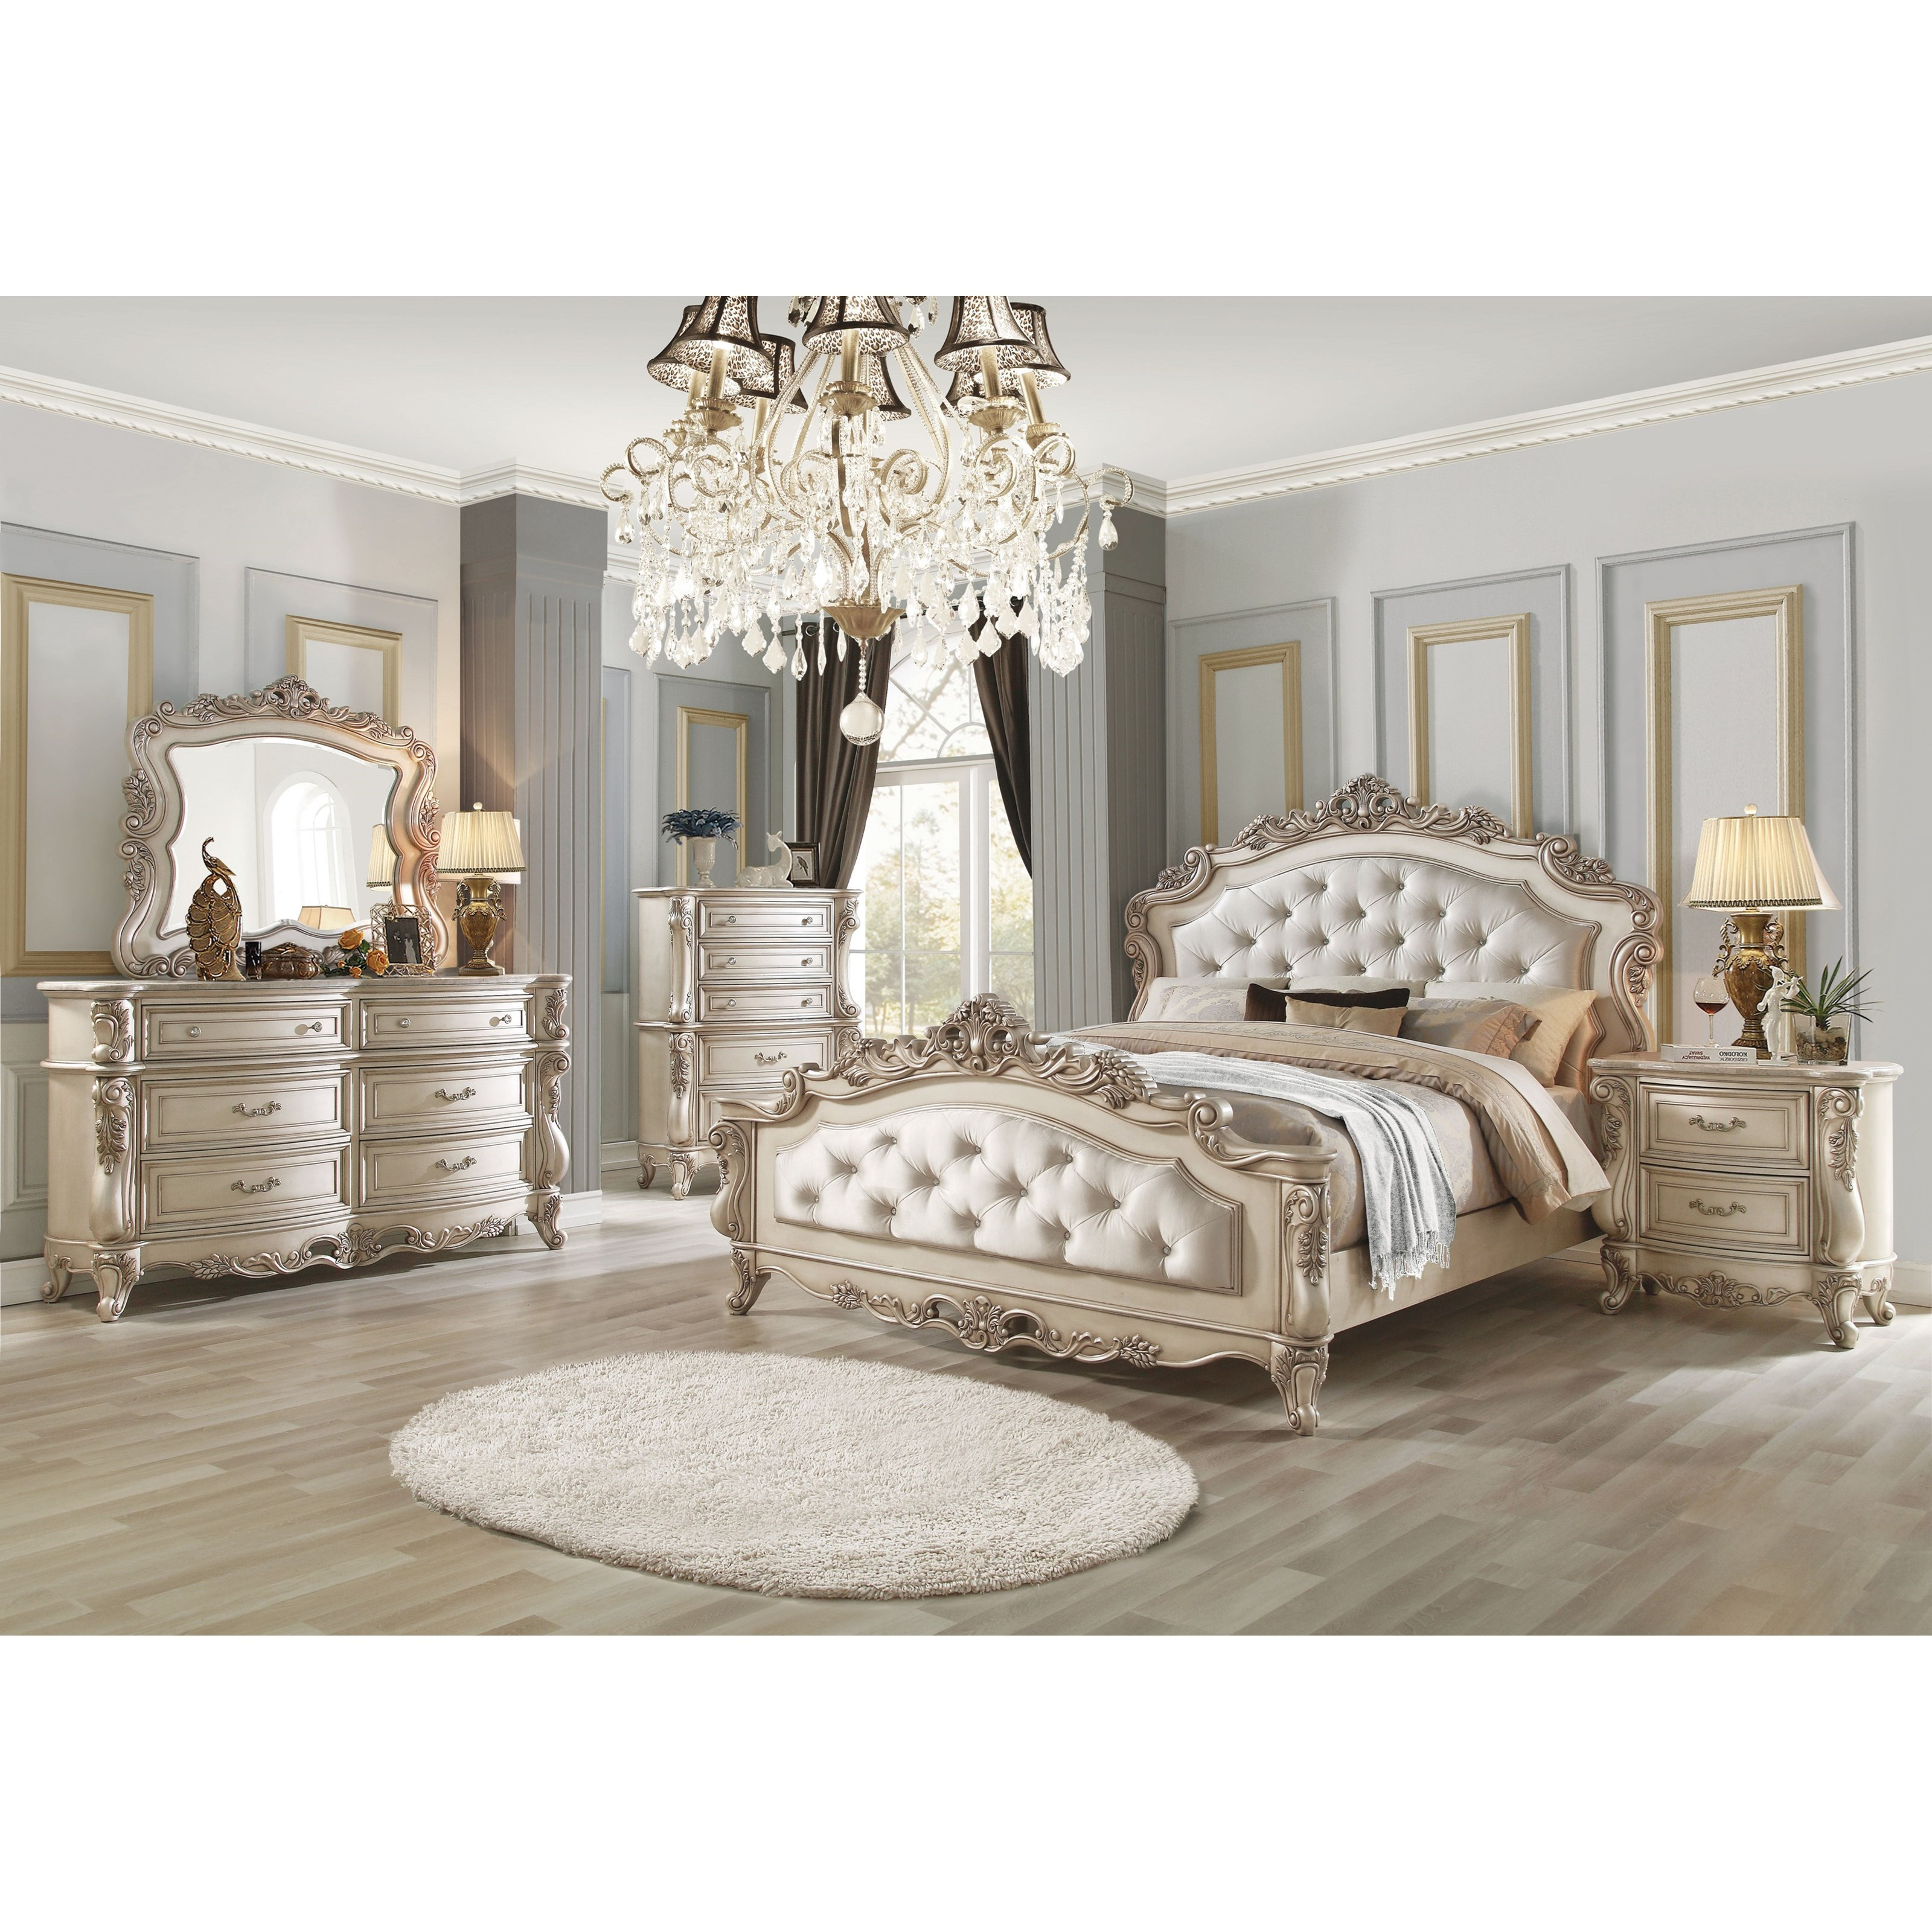 Gorsedd California King Bedroom Group by Acme Furniture at A1 Furniture & Mattress